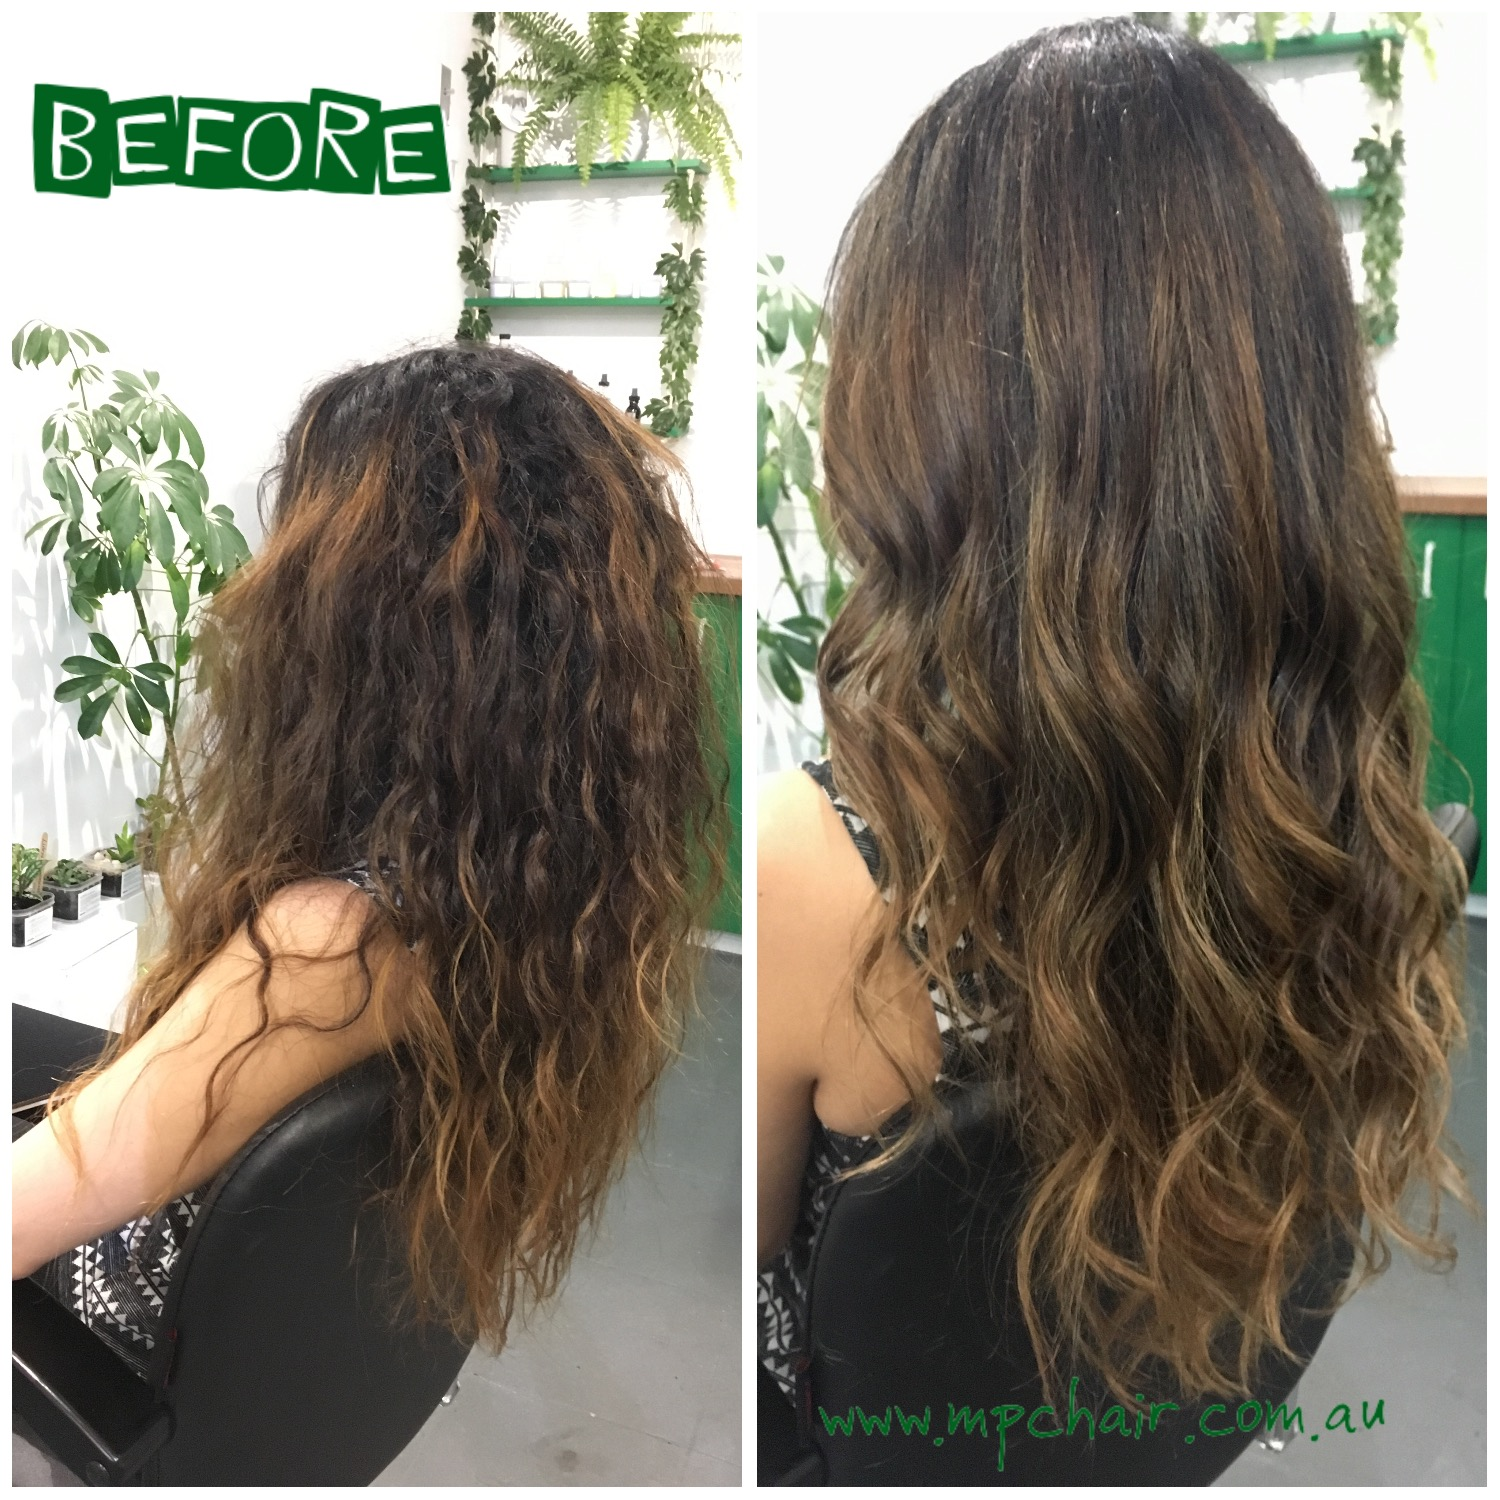 Balayage, one of the most refreshing ways to get texture and movement into your long hair.Working with multiple colour palate, its a perfect natural sun kissed style.